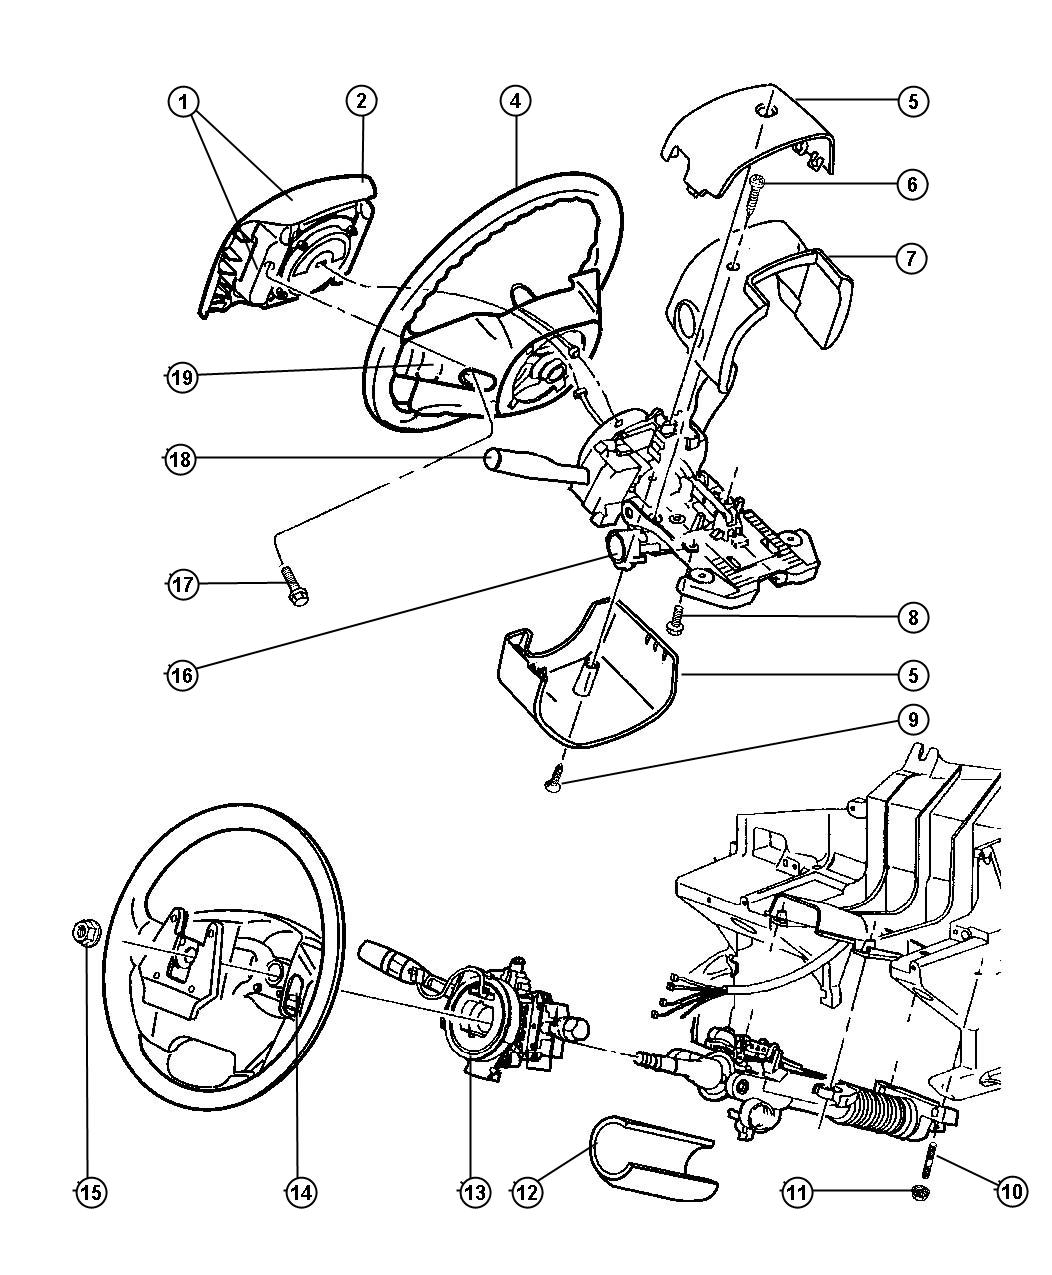 2004 kia spectra tail light wiring diagram 2004 mitsubishi lancer wiring diagram wiring diagram